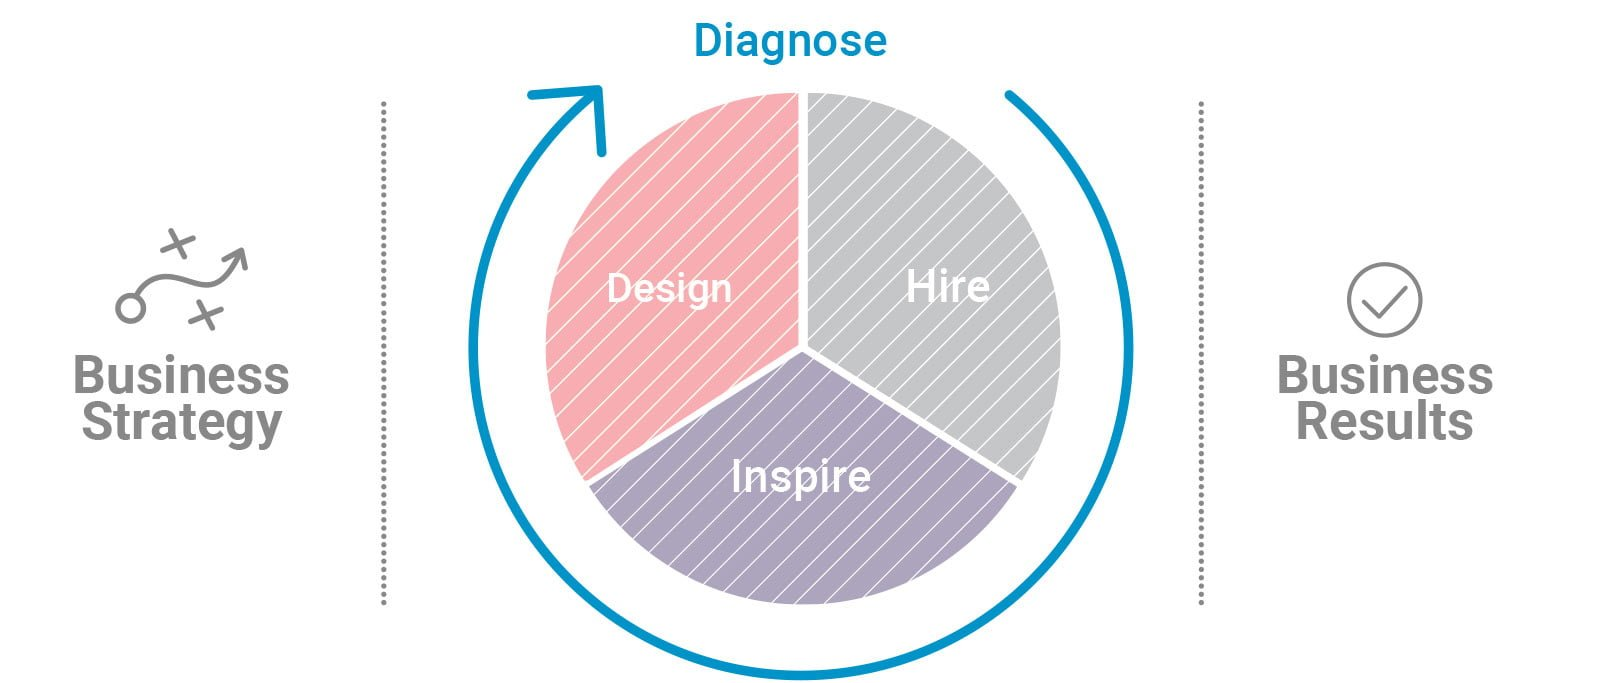 PI Midlantic Diagnose Employee Engagement